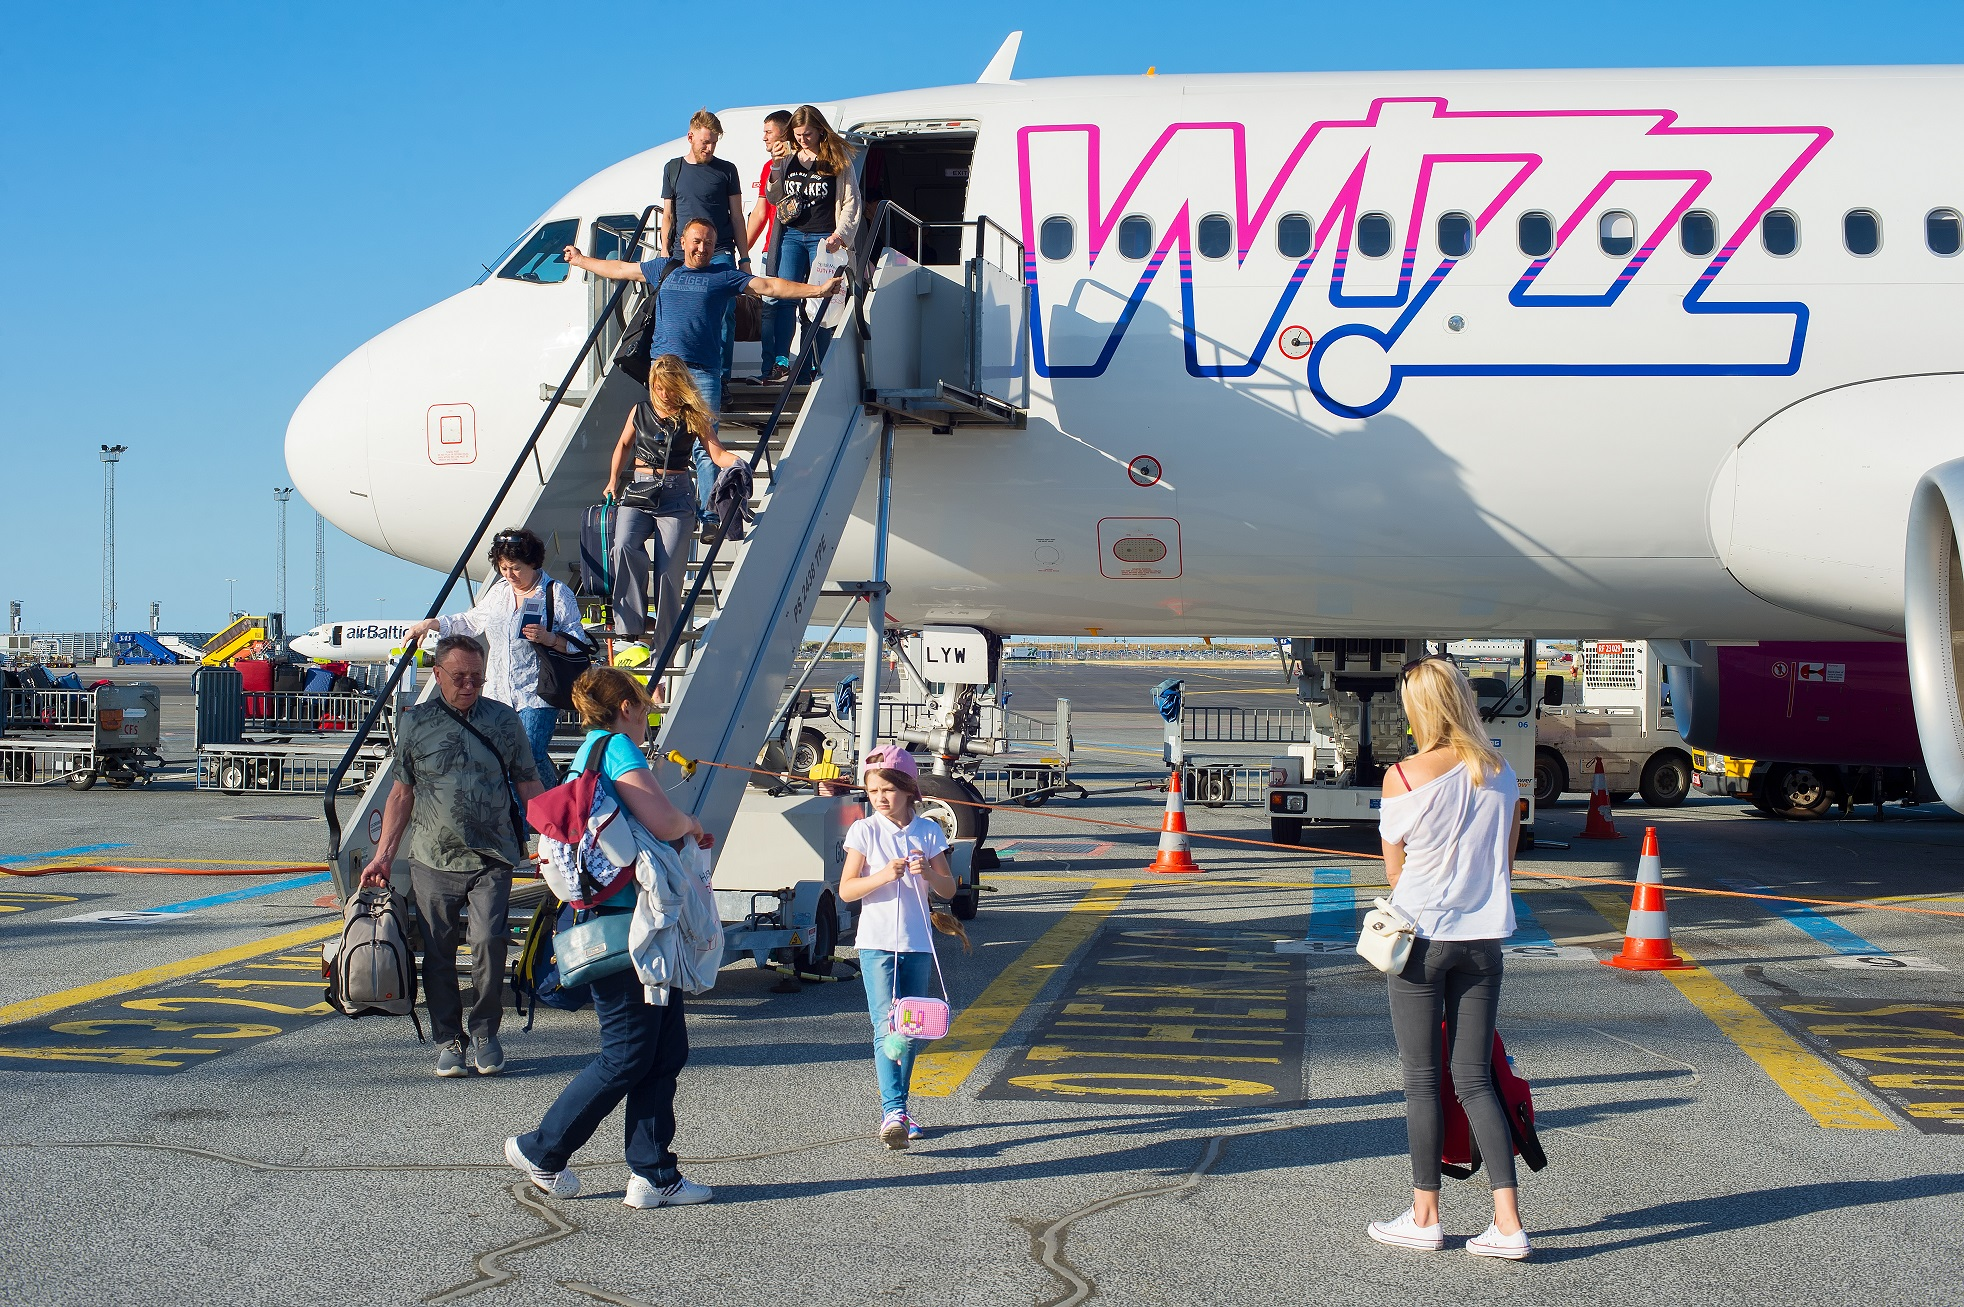 wizz air boarding